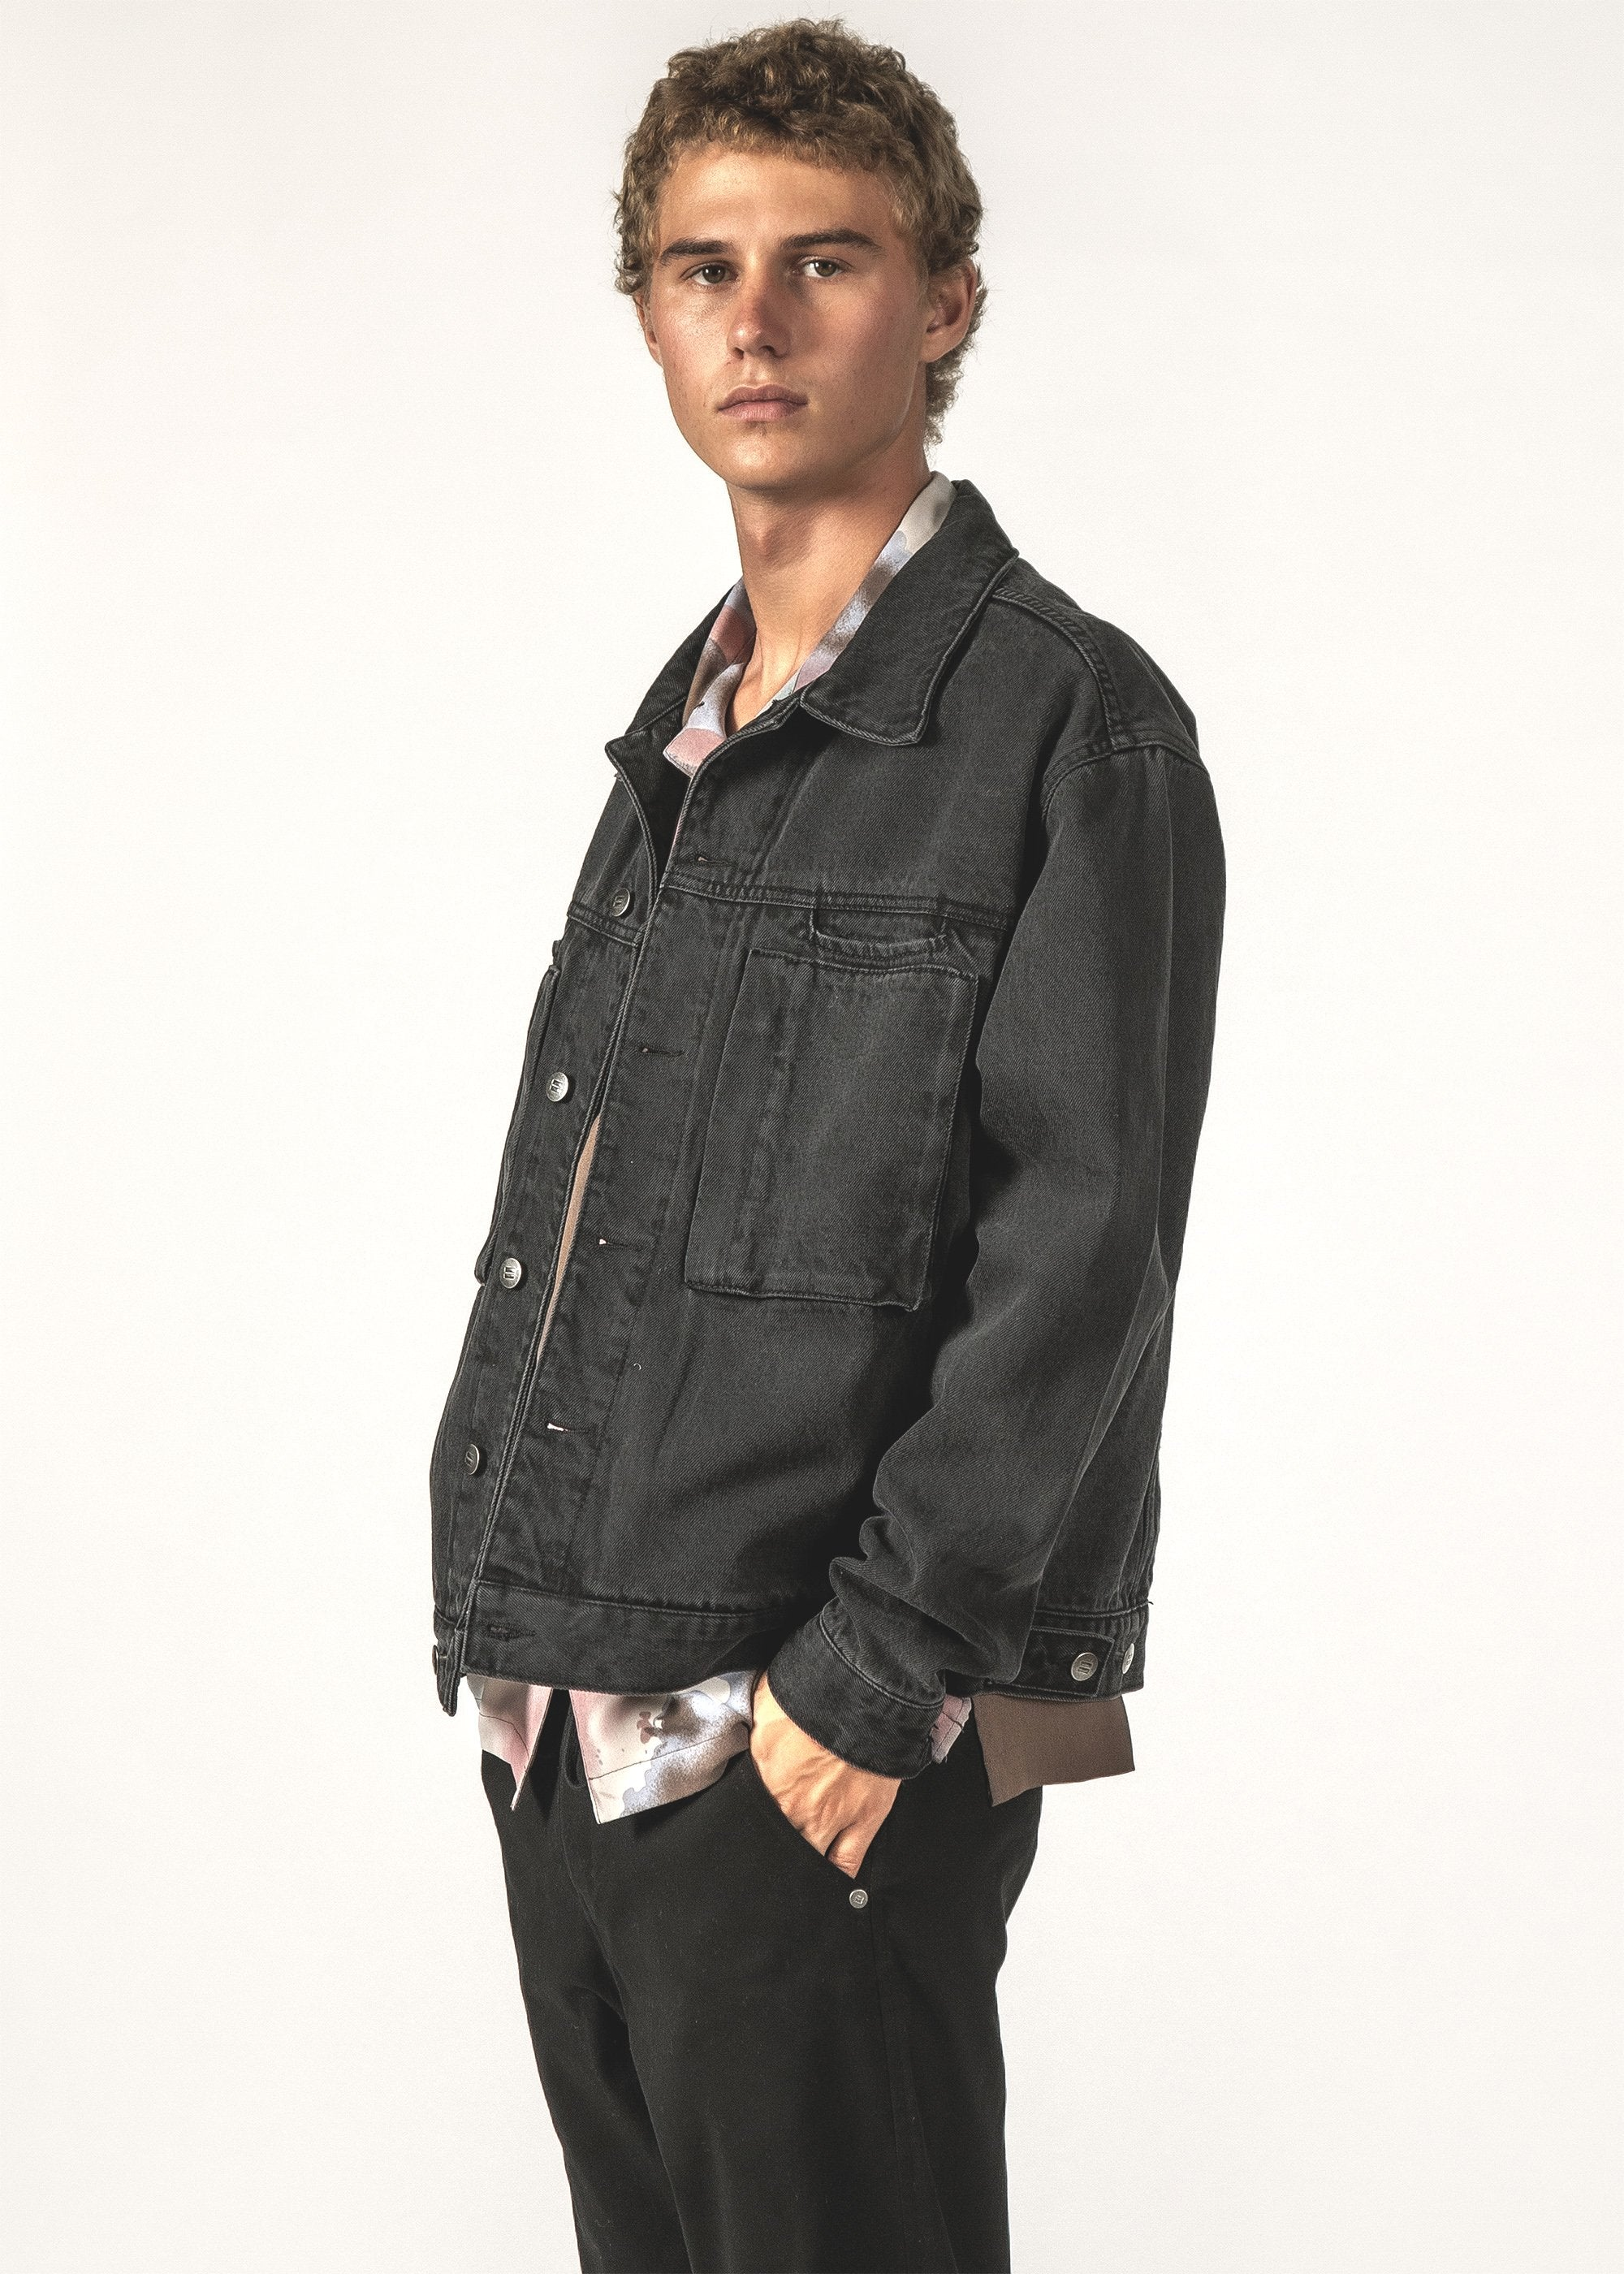 SALE - EGO DENIM JACKET - Black Wash